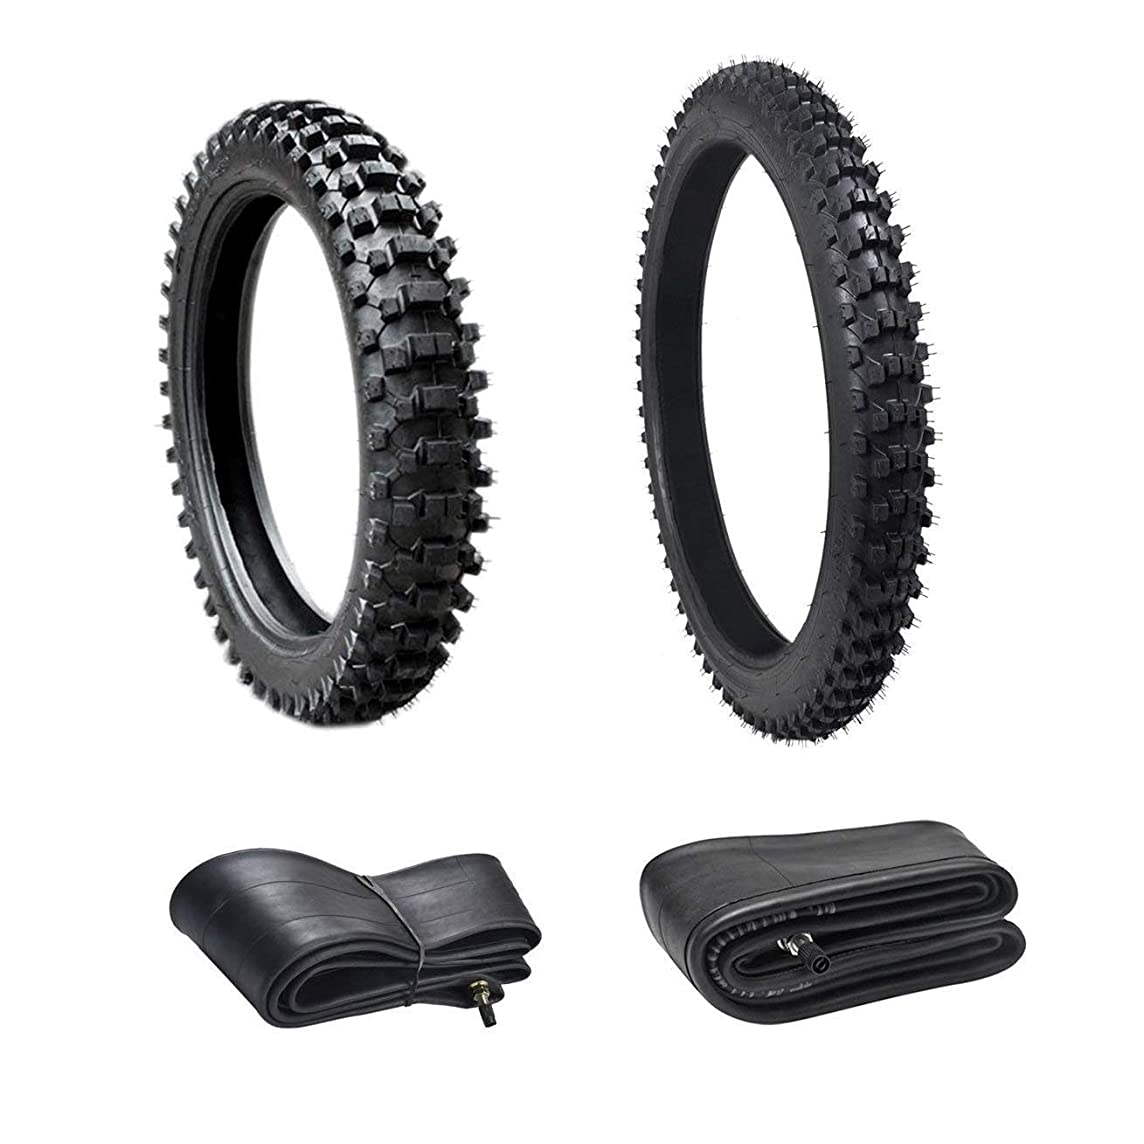 WPHMOTO Front 80/100-21 & Rear 110/90-18 Dirt Bike Tire and Inner Tube Set | Off Road Mud Motocross Motorcycle Tires and Tubes